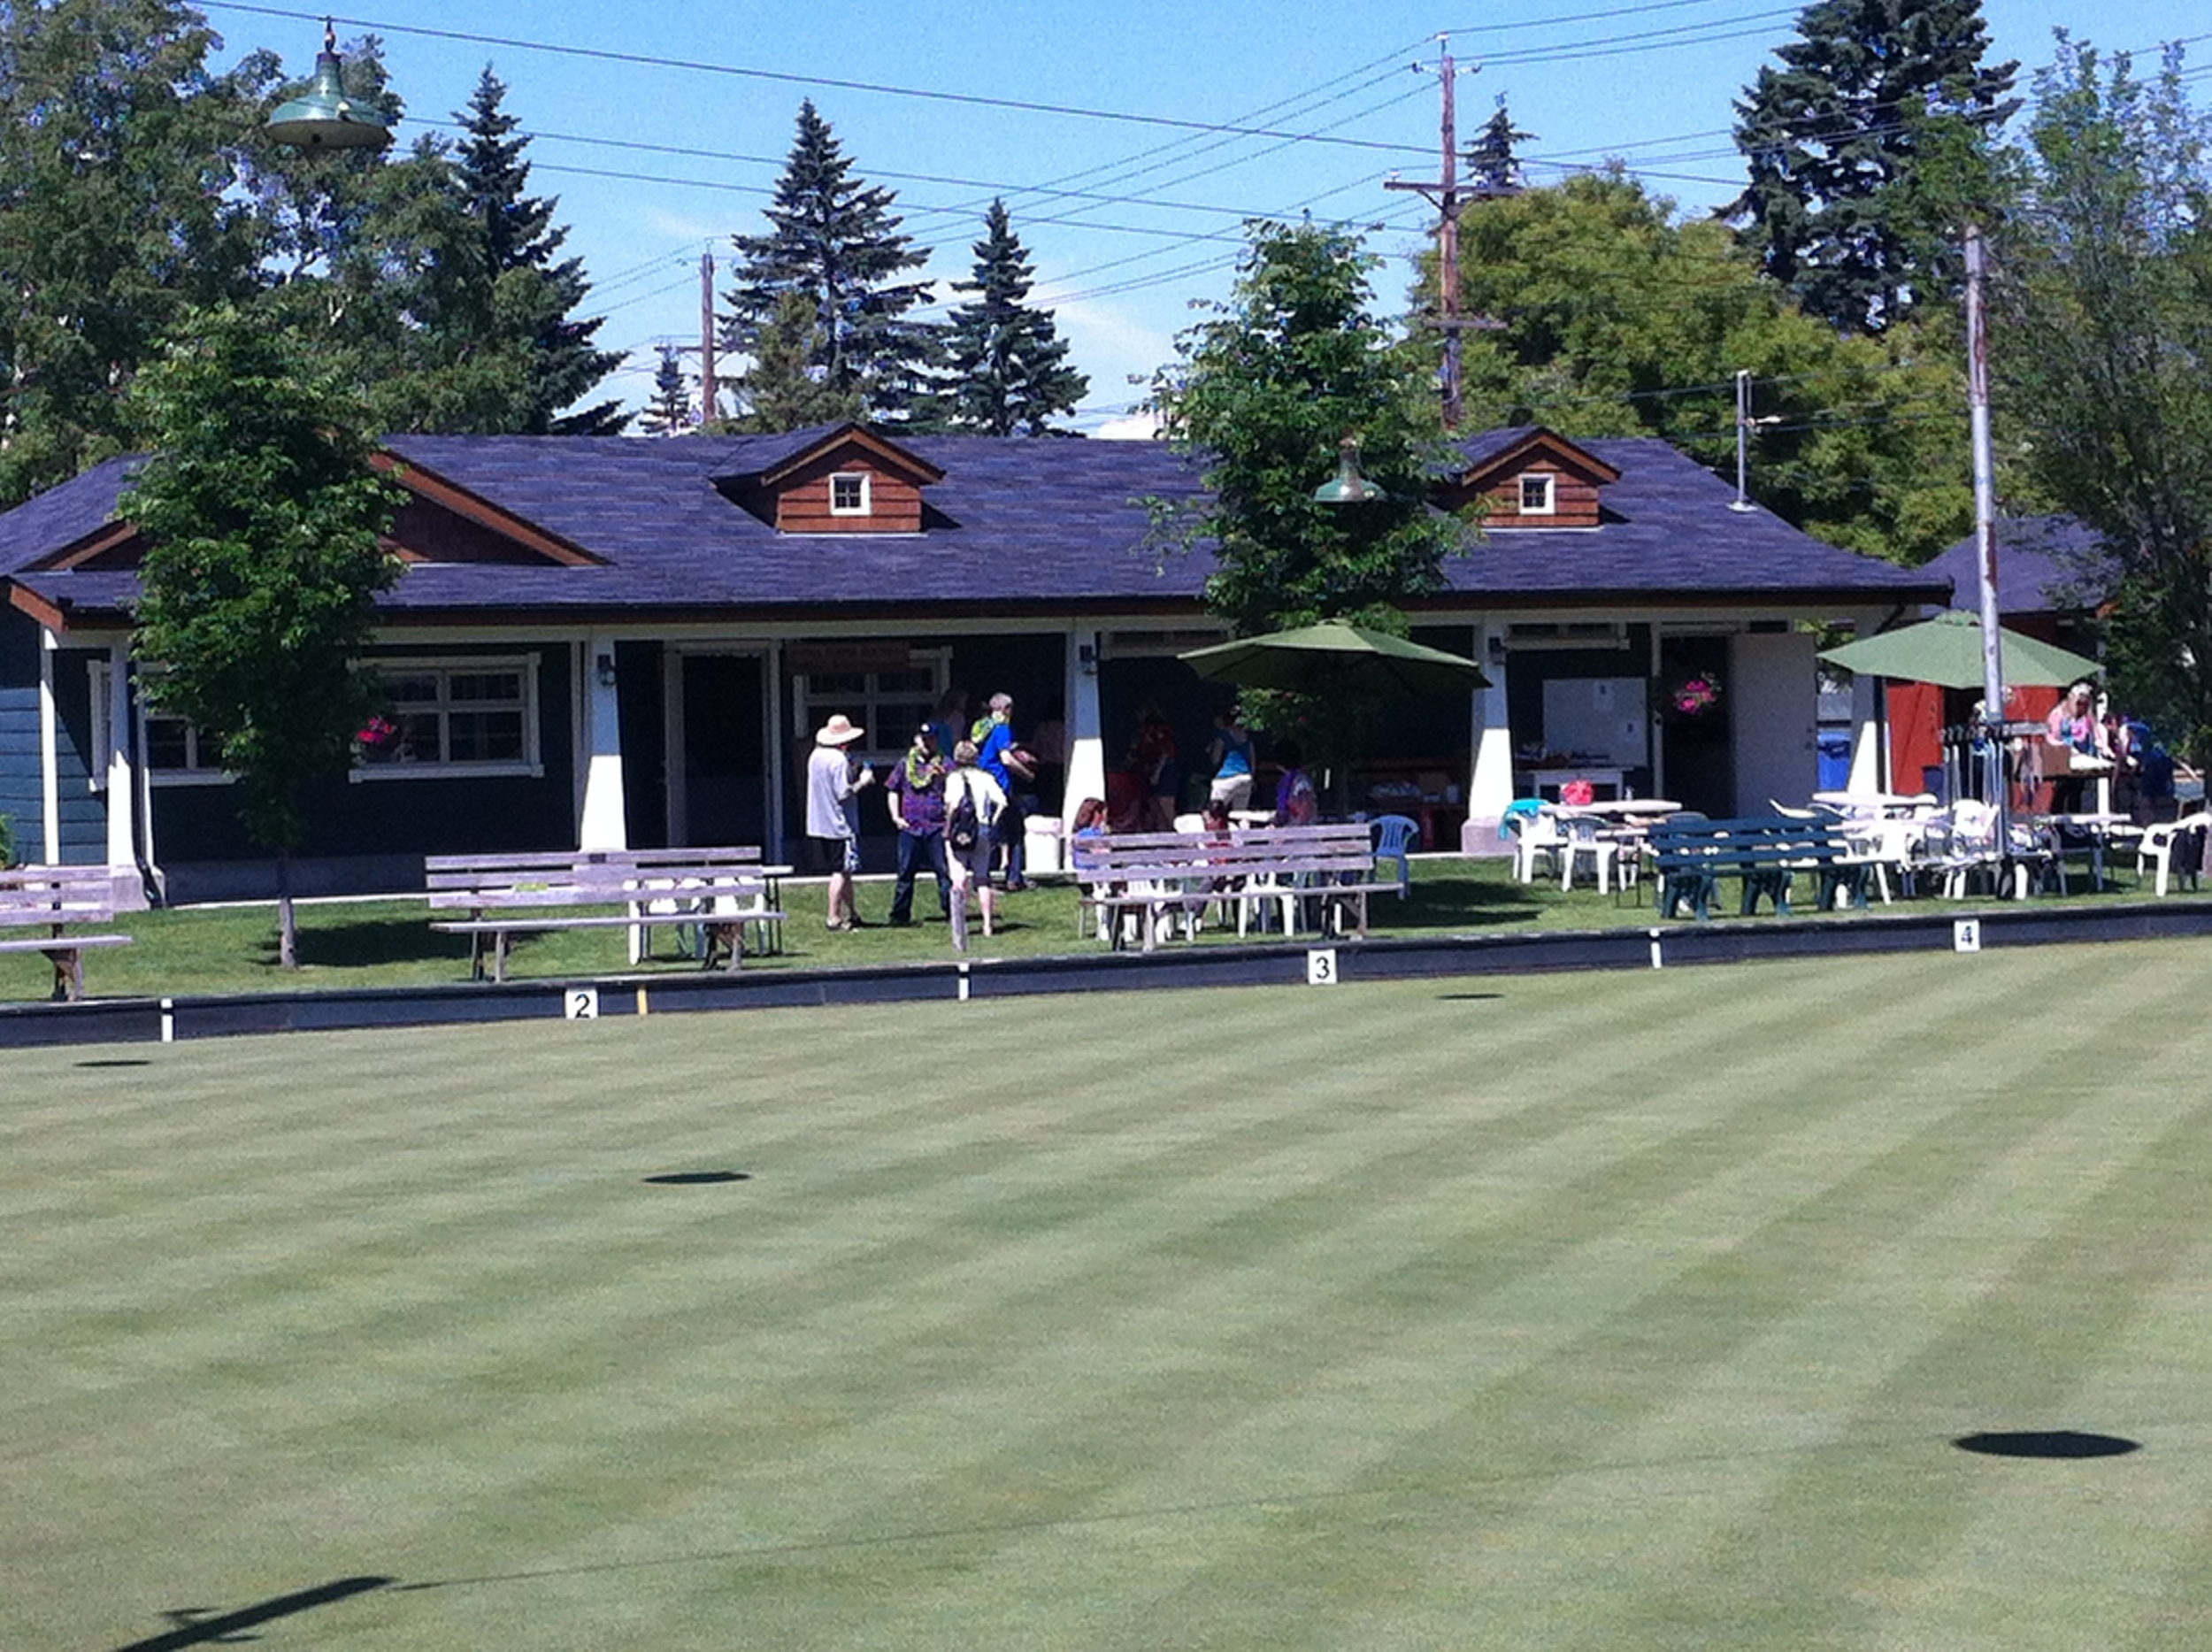 Lawn Bowling in West Hillhurst.